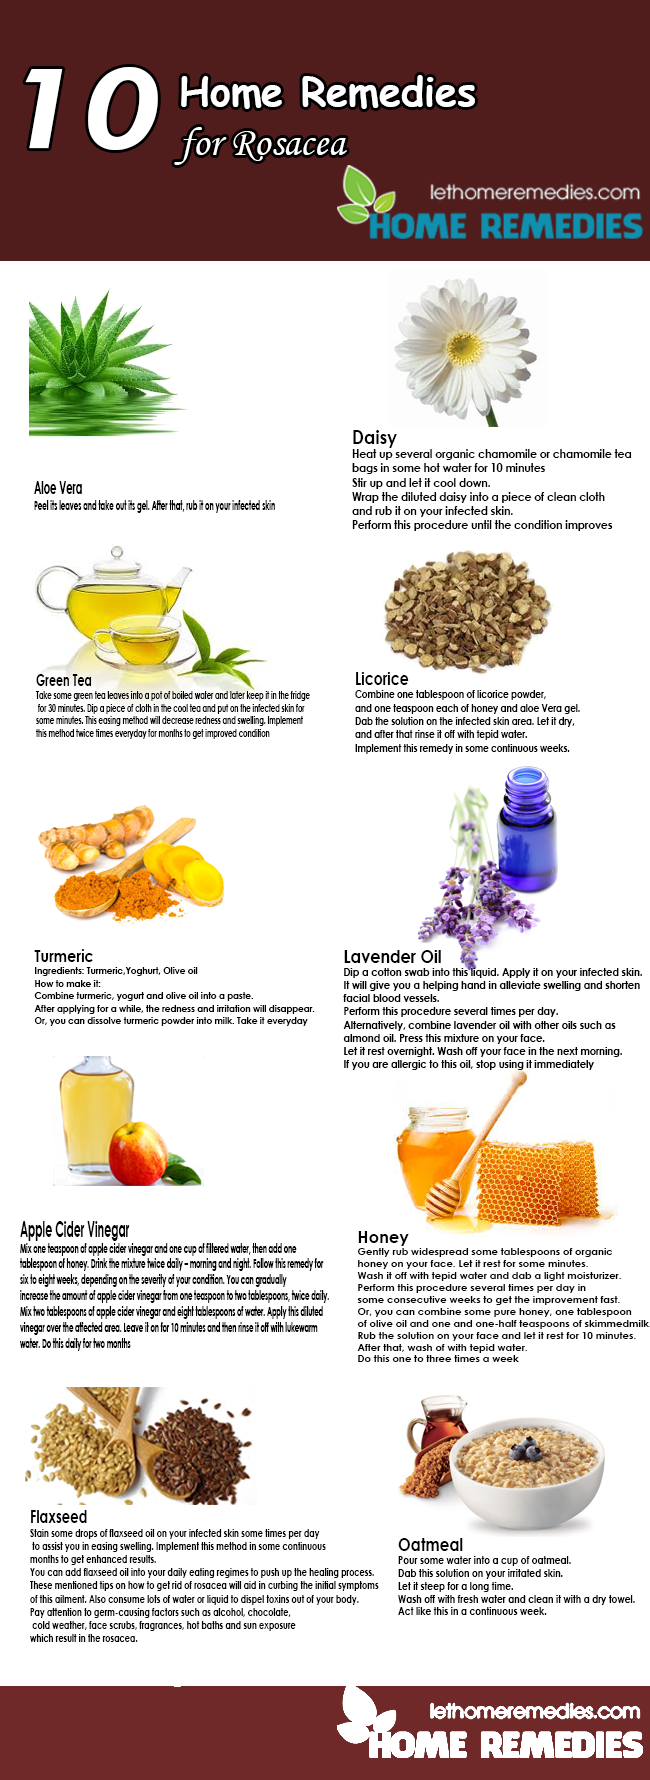 Rosacea is the term used to call a skin condition which often occur on the face and make your face incur redness together with small bumps filled with pus. Women who are in the middle of age are more prone to this condition Here are the top 10 best home remedies for rosacea which you can easily apply at home in order to help you treat rosacea symptoms as well as maintain healthy face skin…